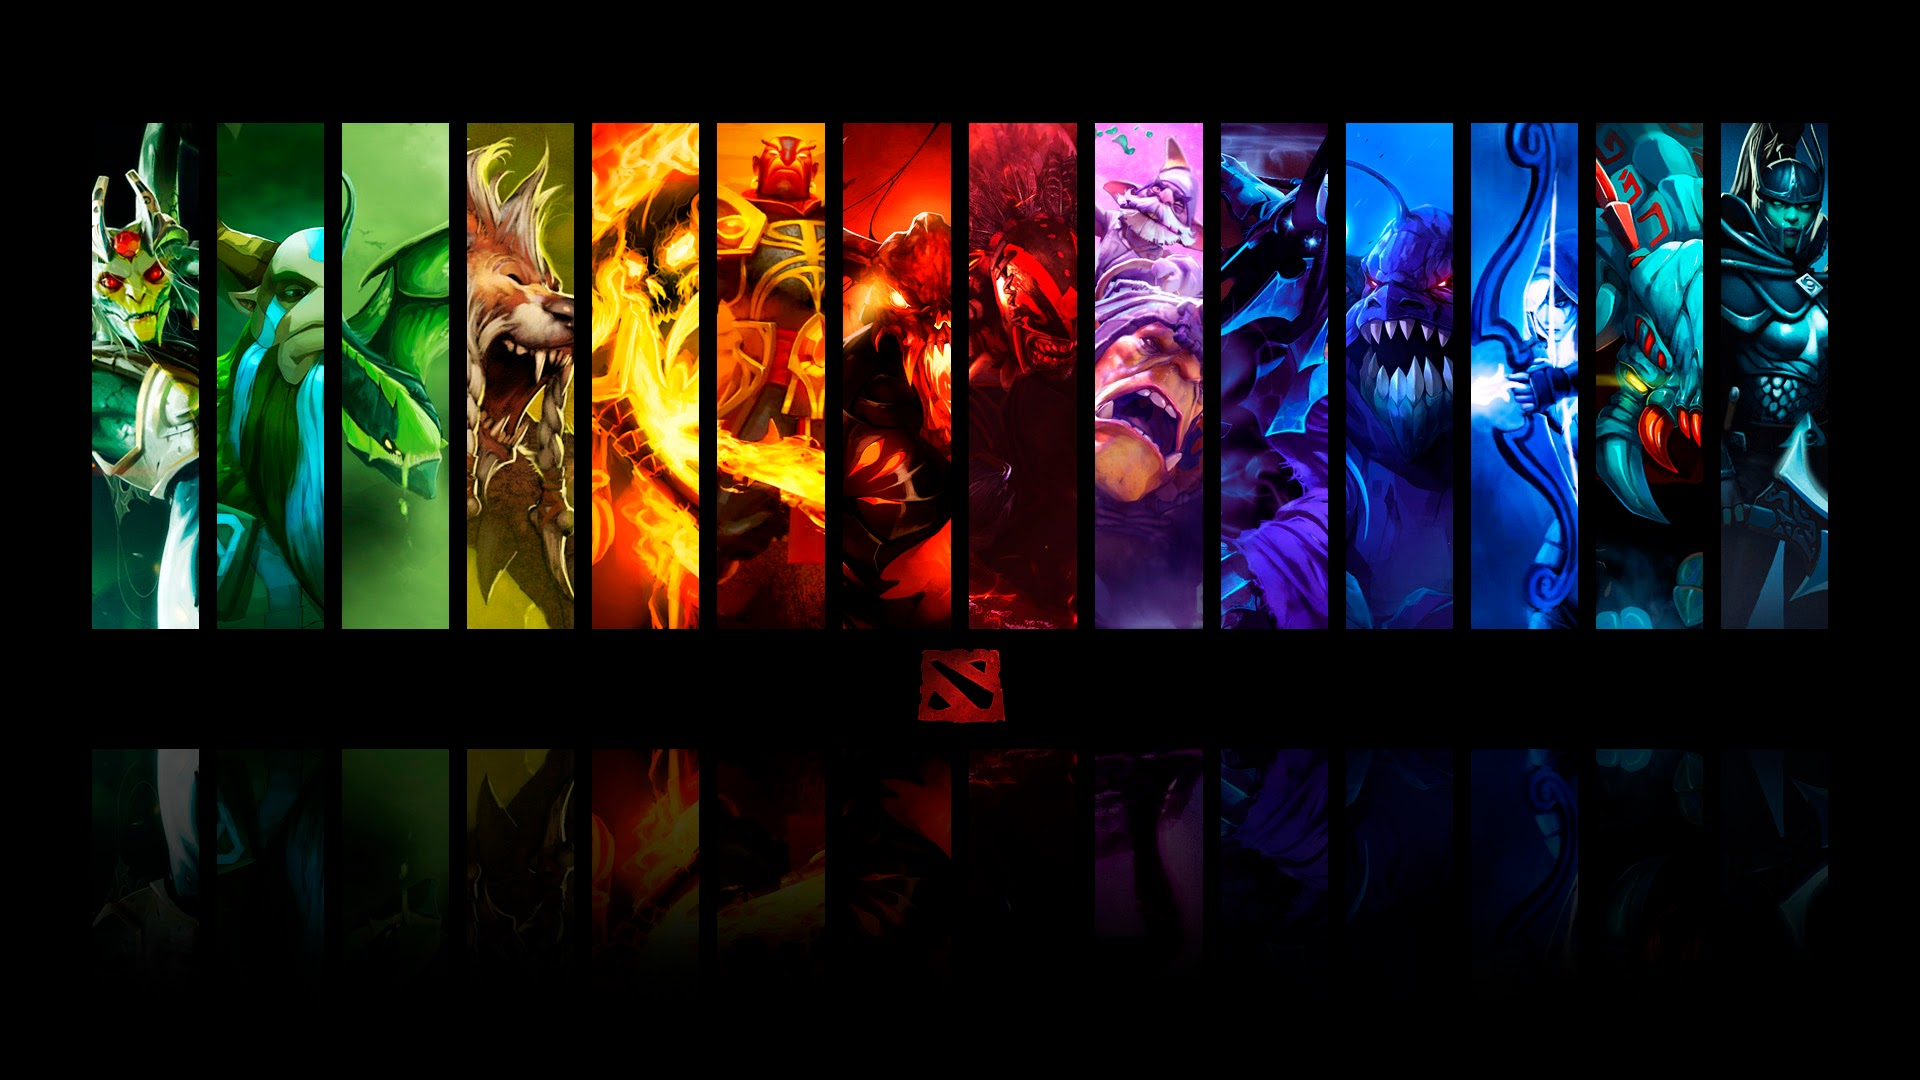 dota 2 game background - photo #23